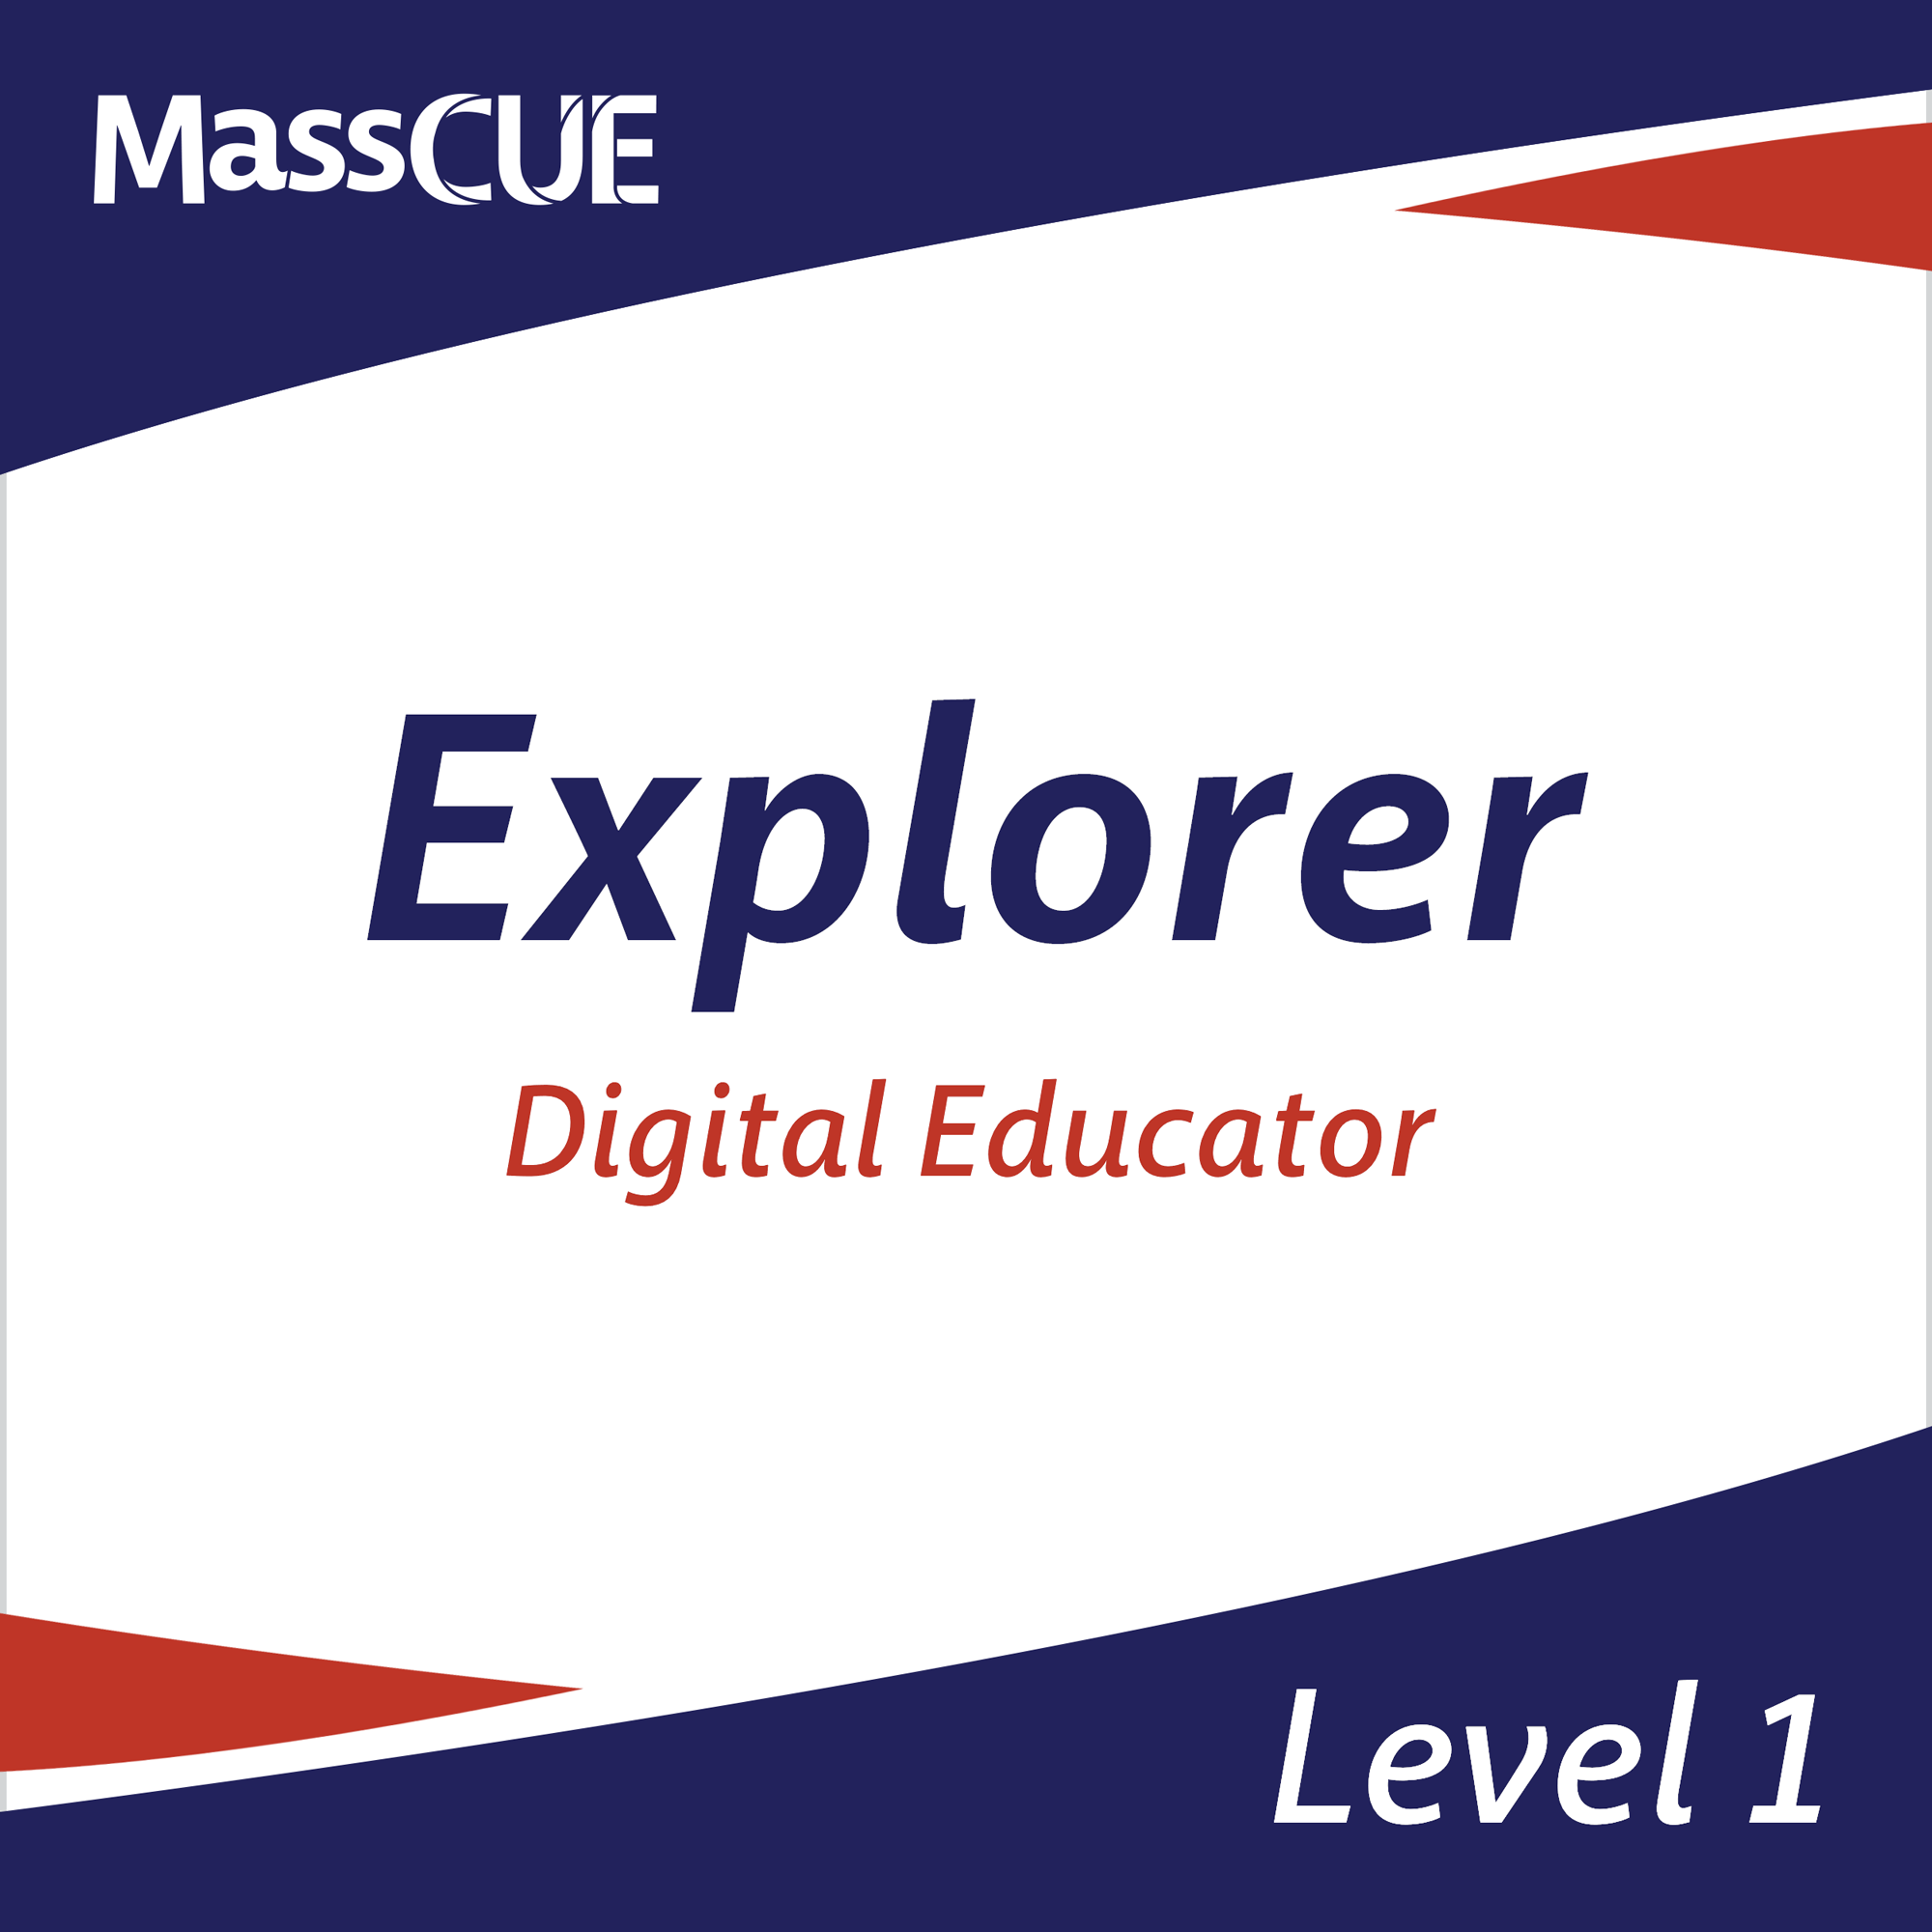 MassCUE Digital Educator Level 1 Explorer